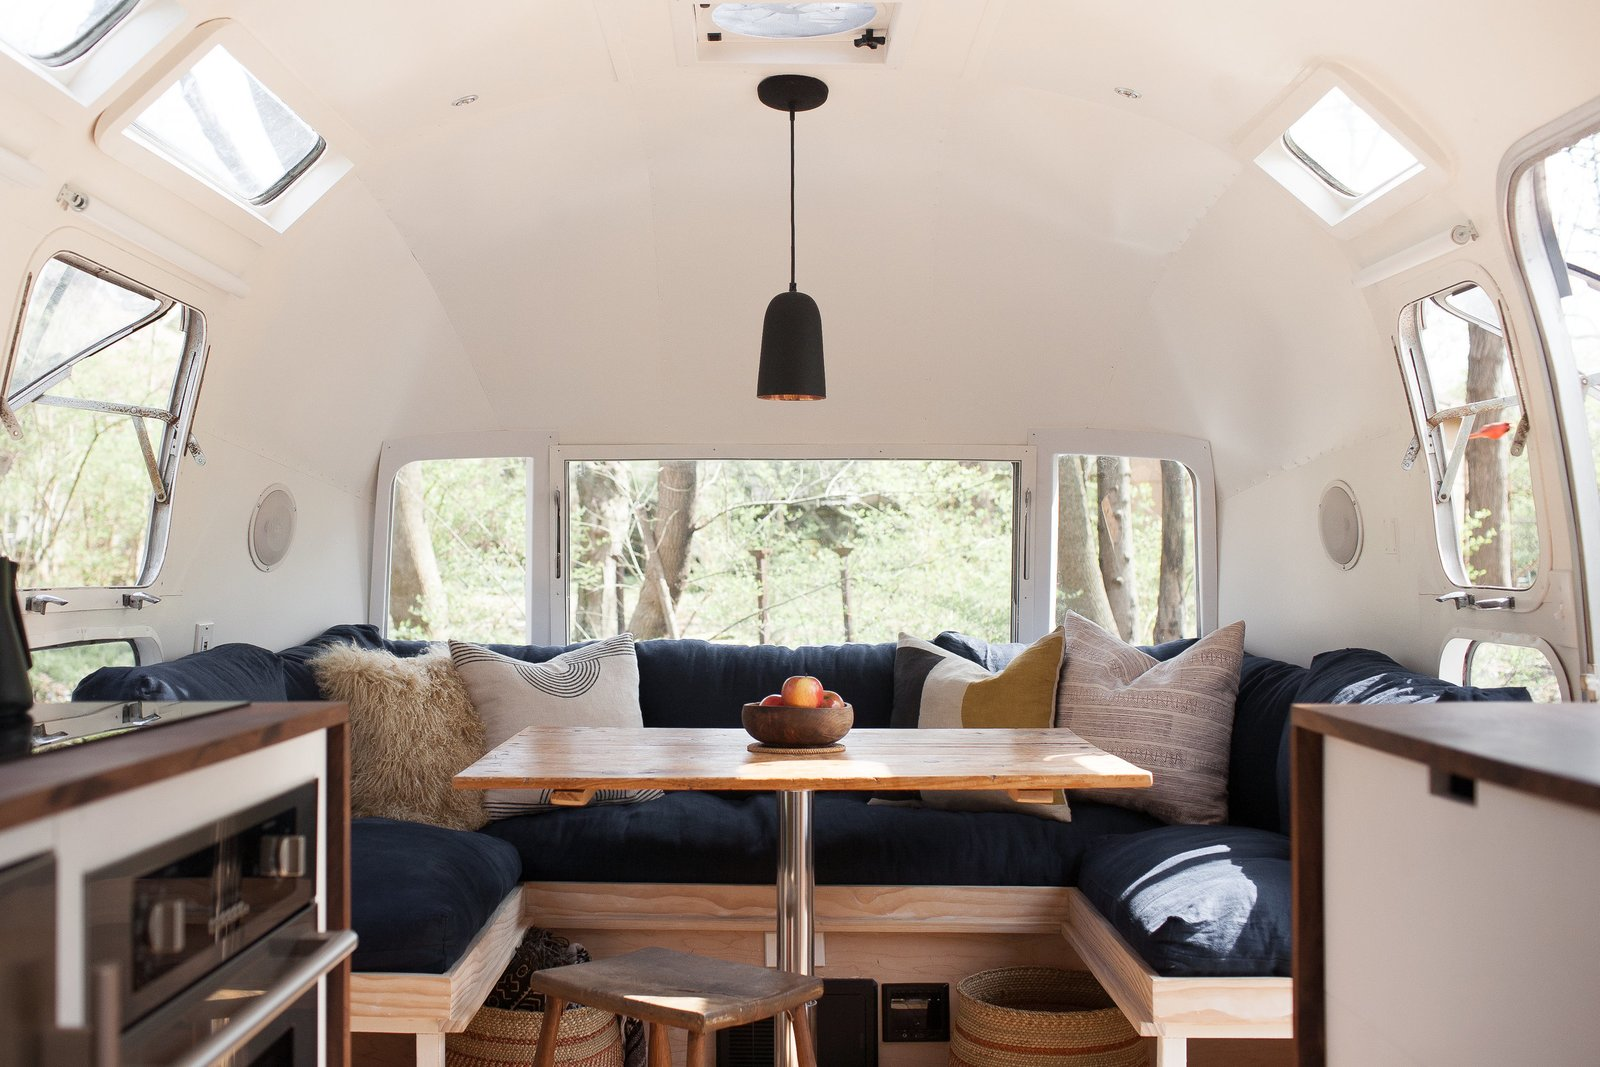 Ellen Prasse, an art teacher, and her partner, artist and writer Kate Oliver, transformed their lives and this 1977 Airstream over the course of a year, bringing the trailer back to life and giving it a classic but modern redo. Small touches, like a matte black faucet and light fixture paired with stainless steel appliances, along with a mixing of dark and light wood finishes prevent the space from feeling too matchy-matchy and overwhelming. Tagged: Dining Room, Bench, Pendant Lighting, Table, and Stools.  Best Photos from These 7 Vintage Airstreams Were Transformed Into Modern Escapes